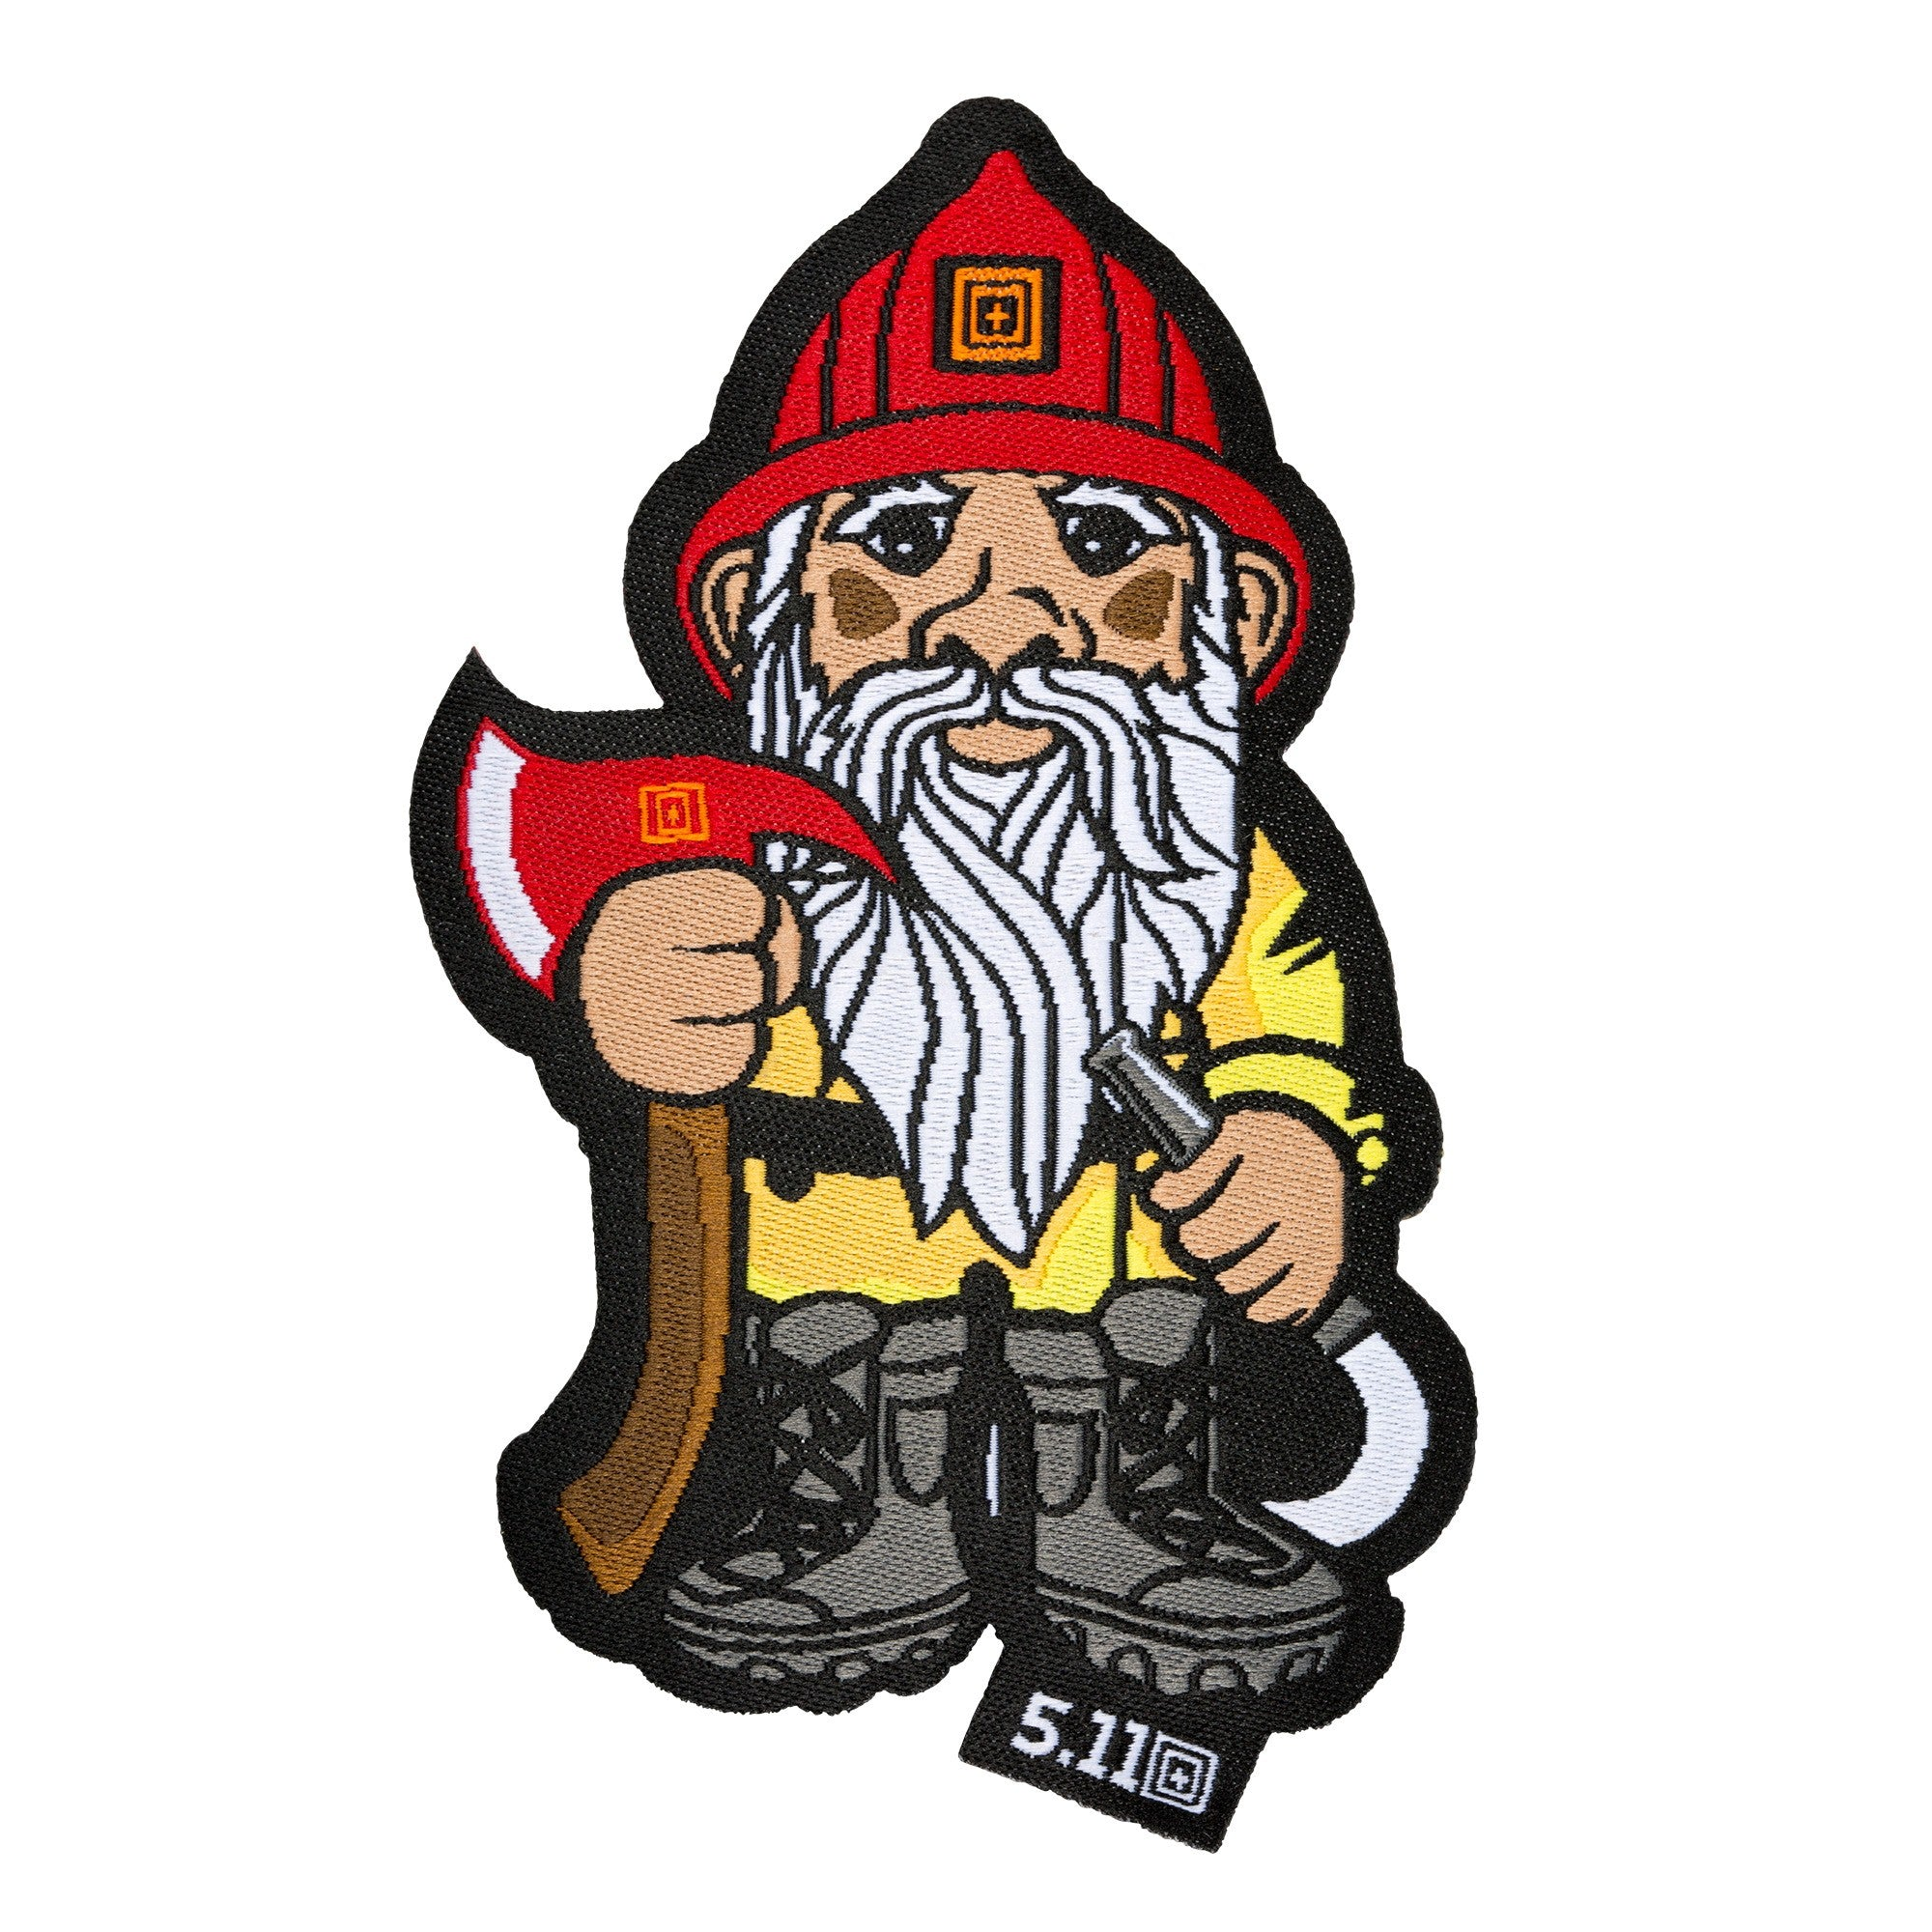 81066 Firefighter Gnome Patch